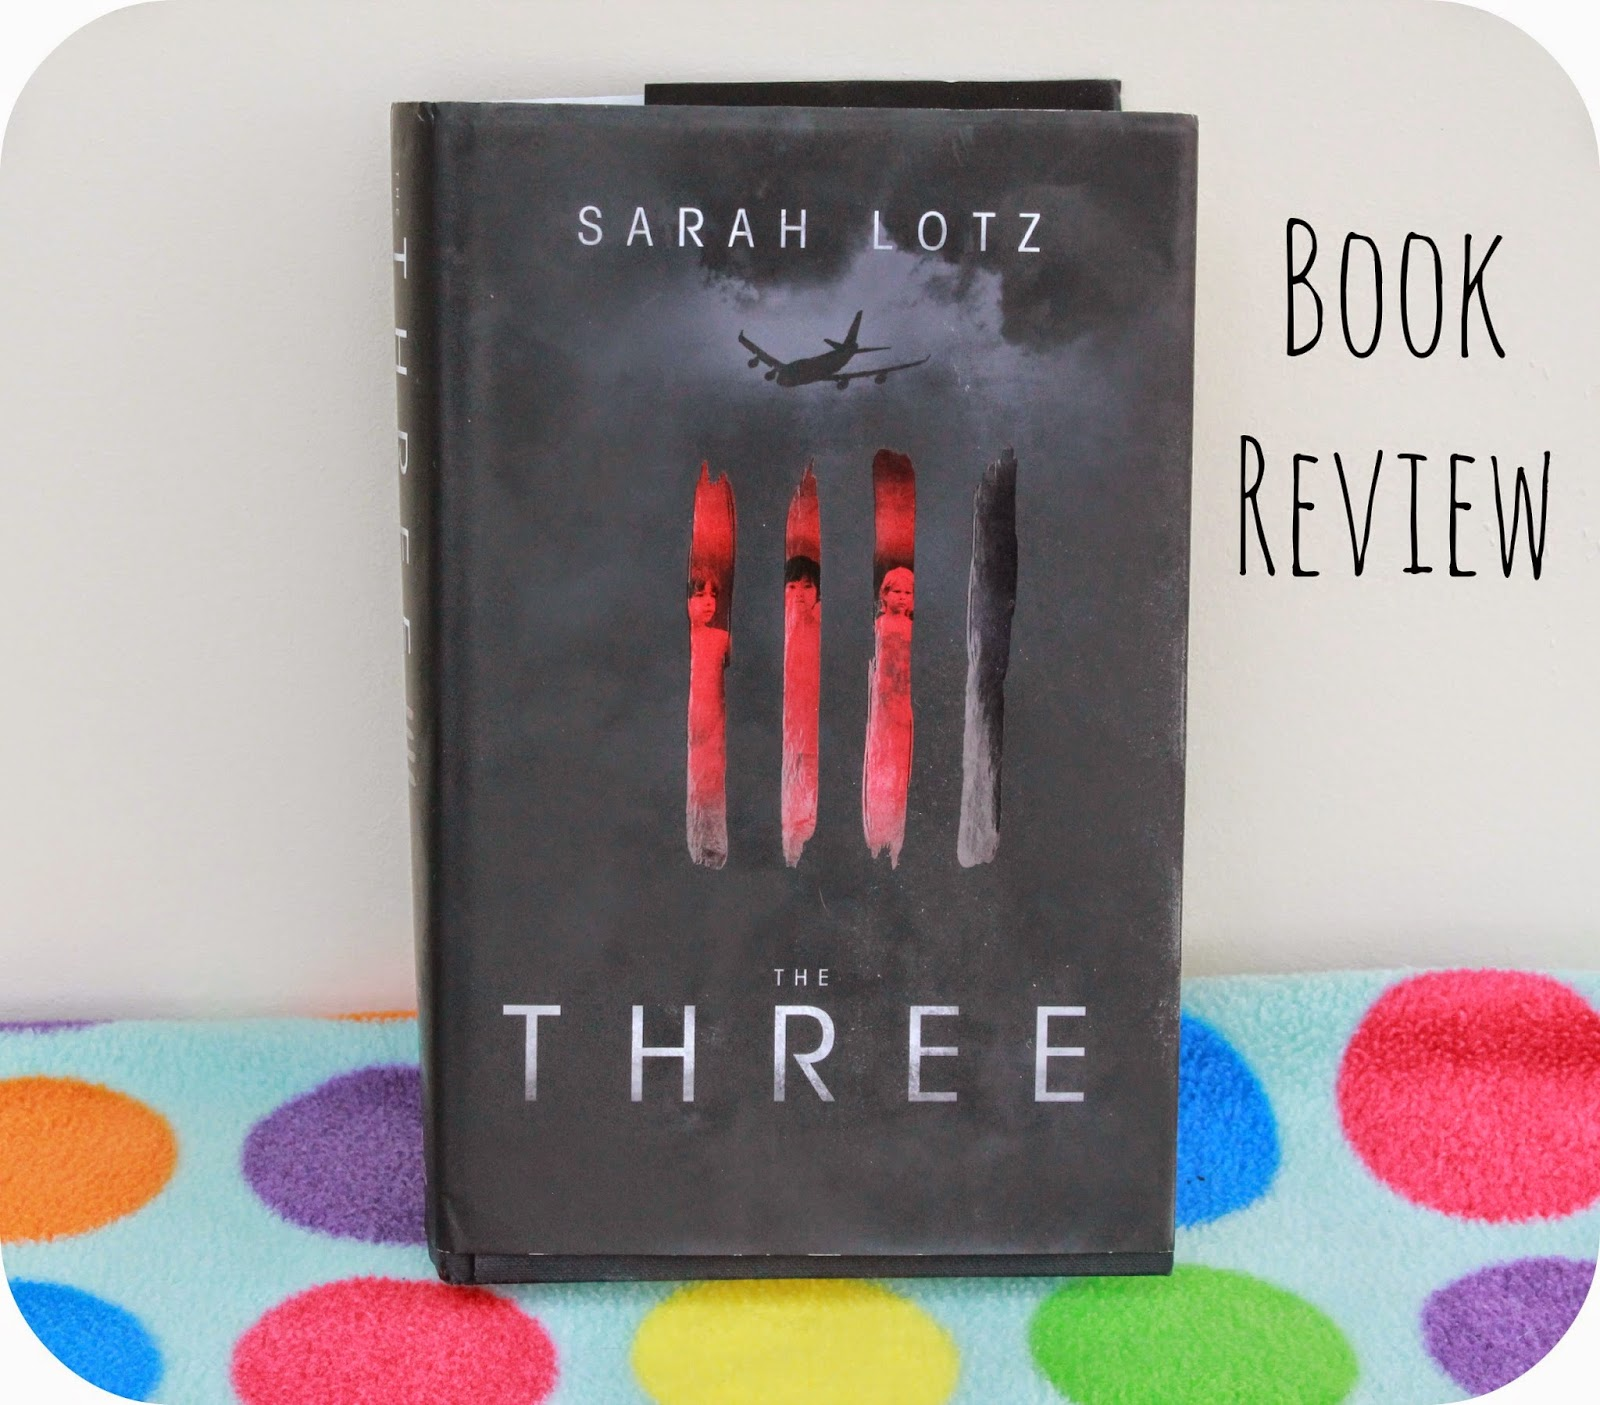 The Three by Sarah Lotz: Review